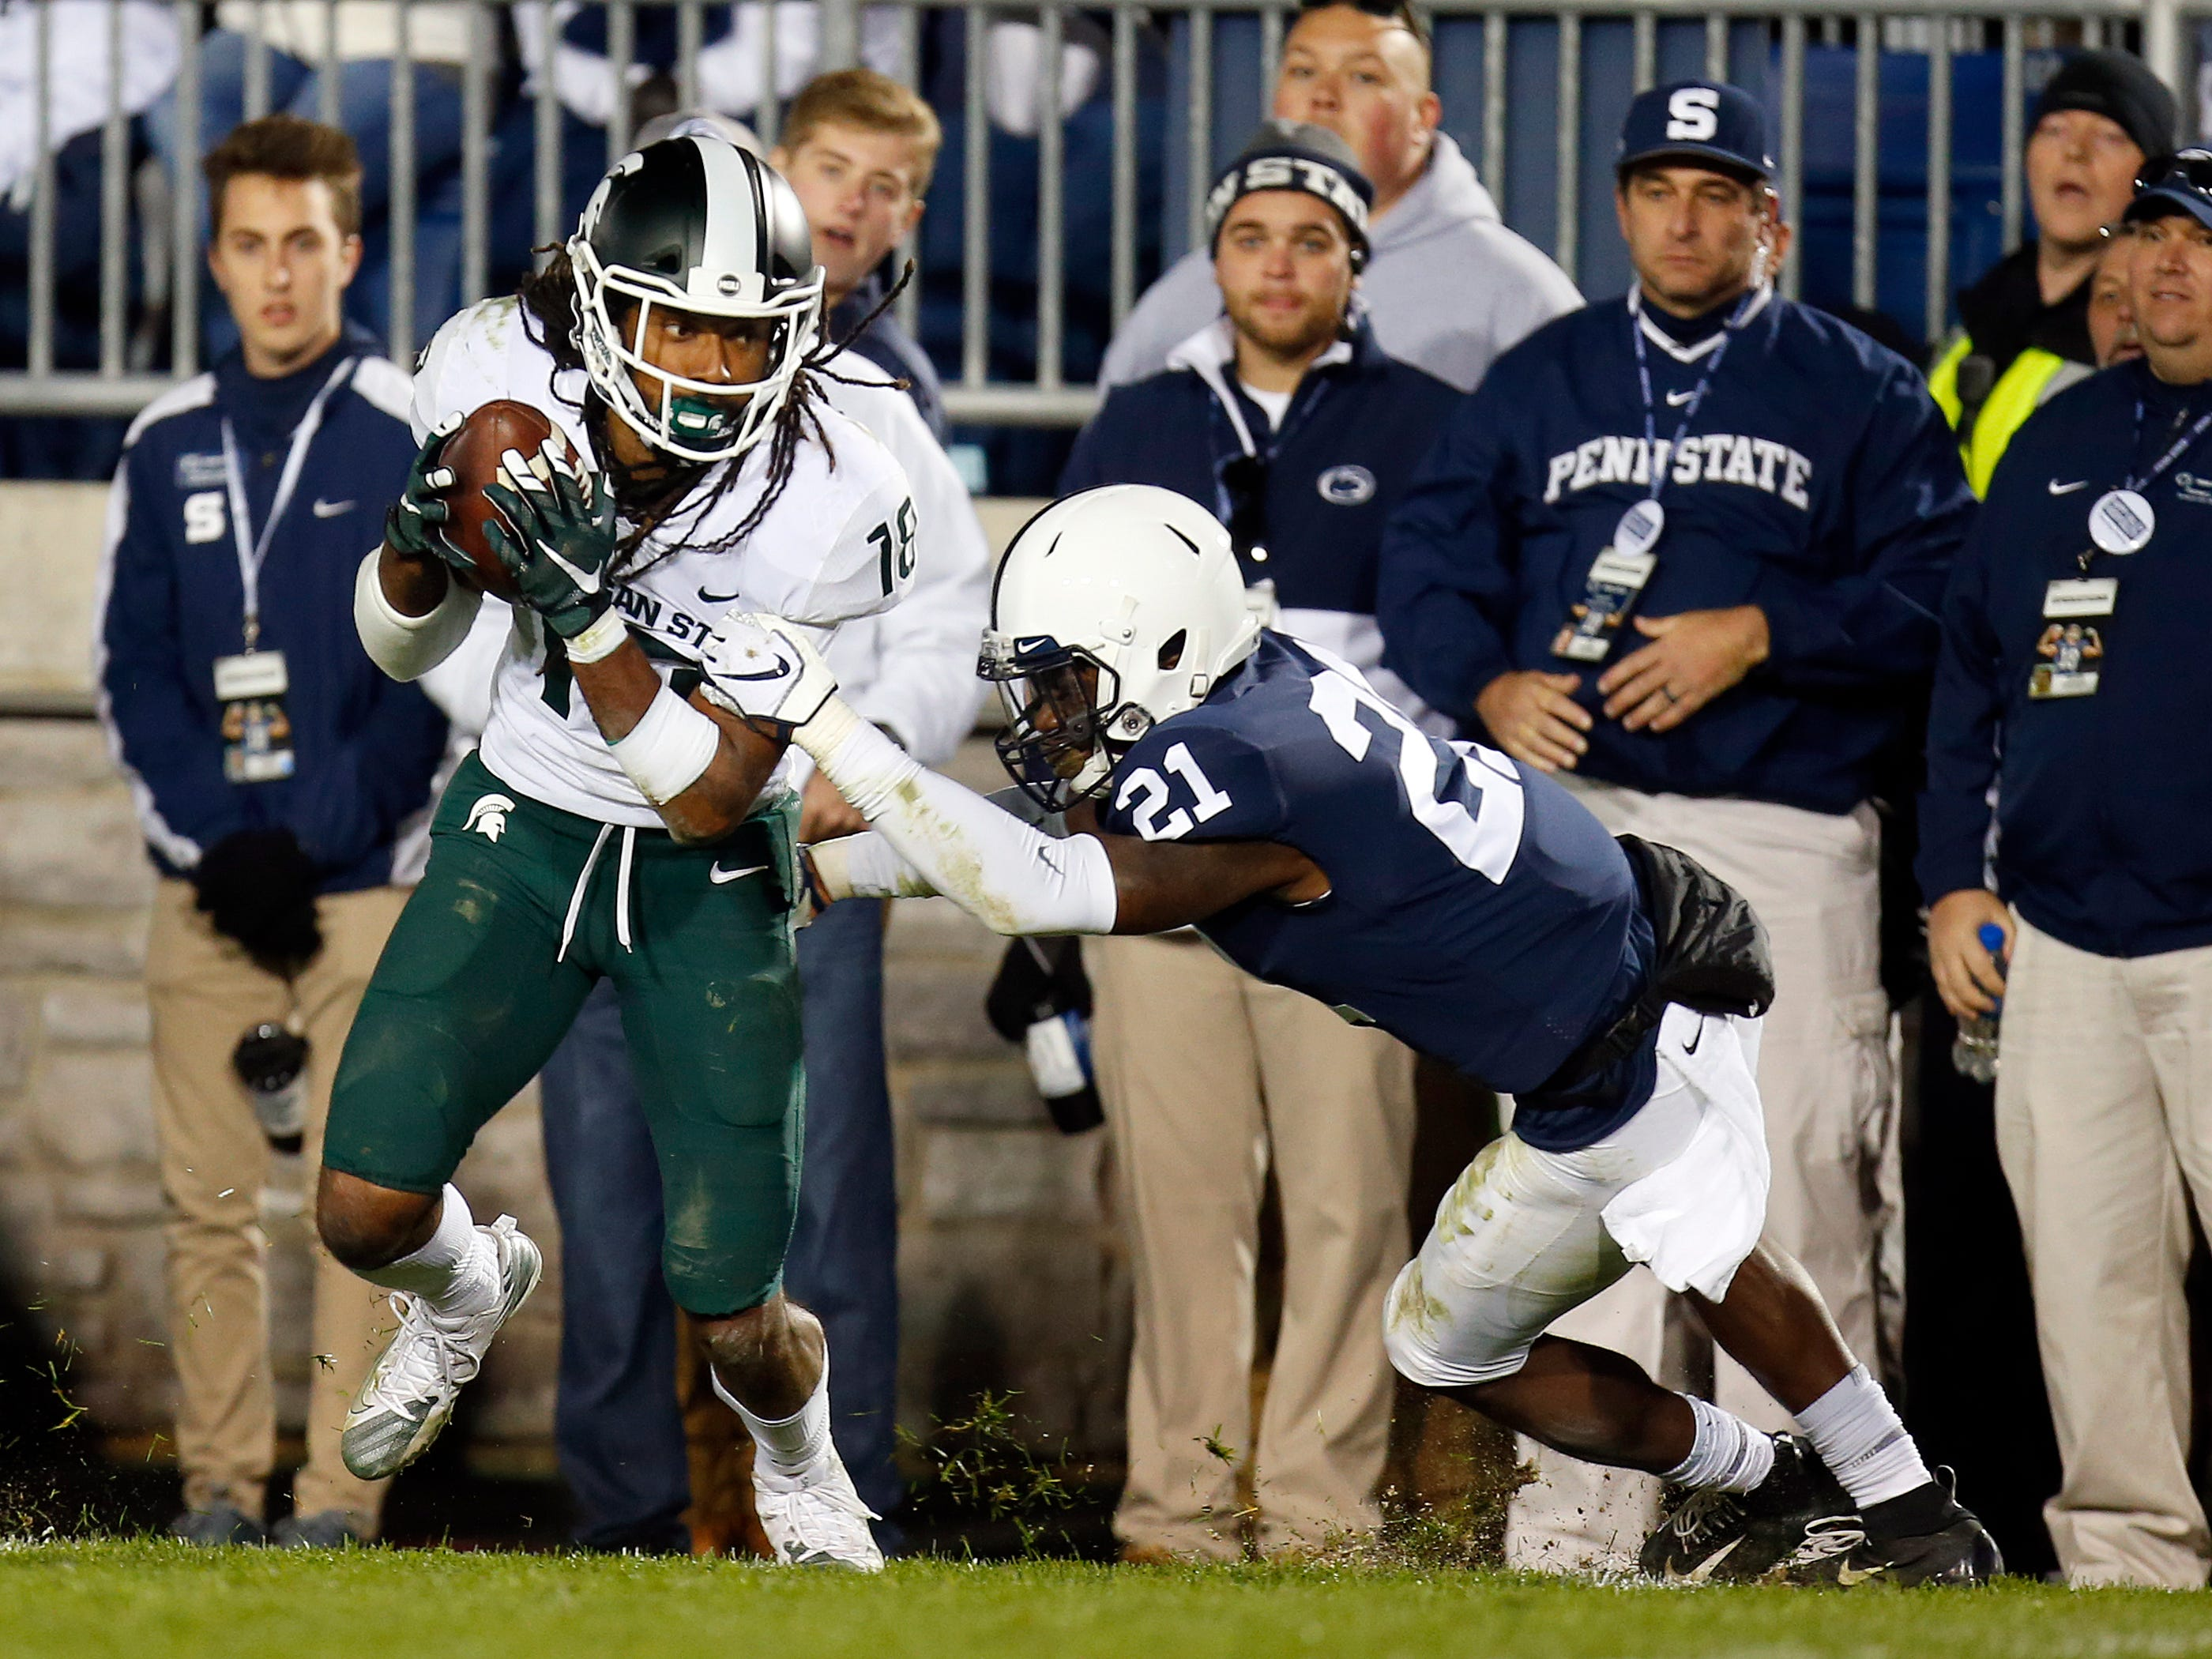 STATE COLLEGE, PA - OCTOBER 13:  Felton Davis III #18 of the Michigan State Spartans catches a 25 yard touchdown pass in the fourth quarter against Amani Oruwariye #21 of the Penn State Nittany Lions on October 13, 2018 at Beaver Stadium in State College, Pennsylvania.  (Photo by Justin K. Aller/Getty Images)